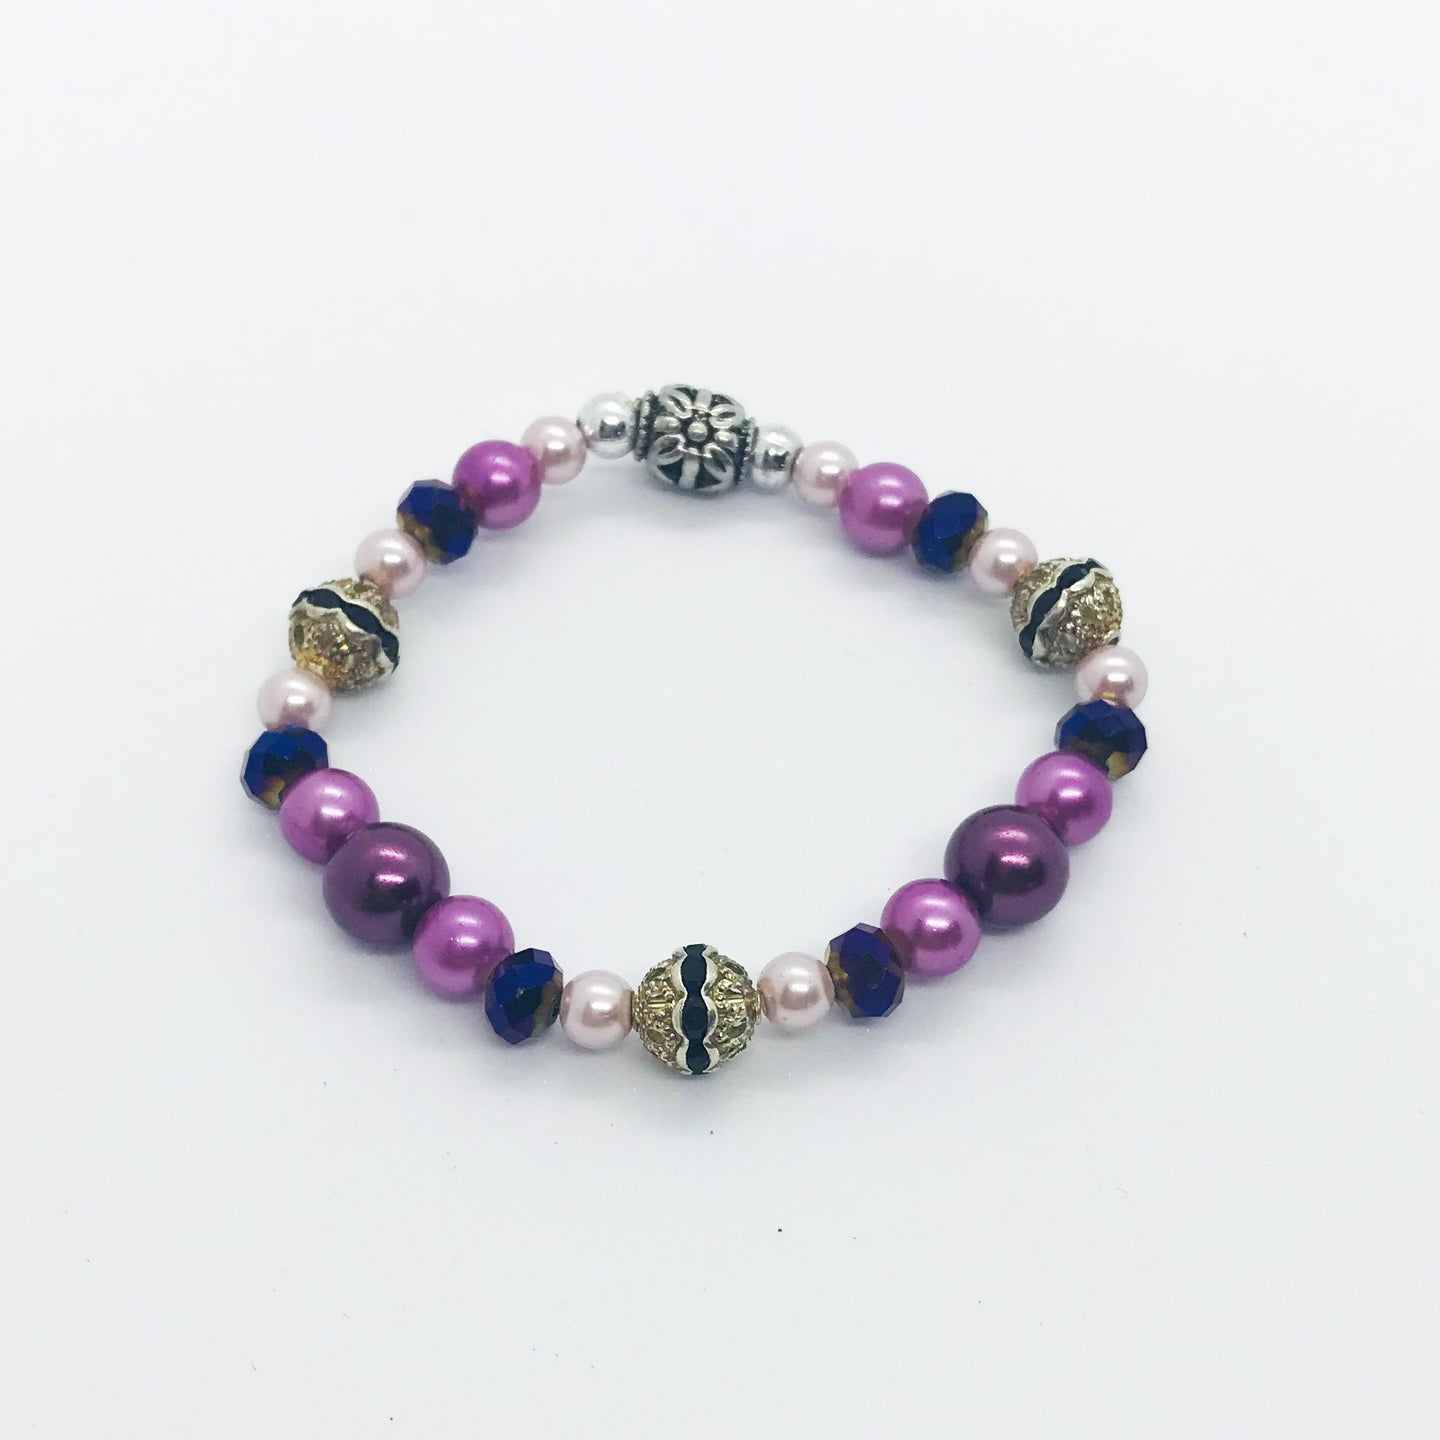 Glass Bead Stretchy Bracelet - B617